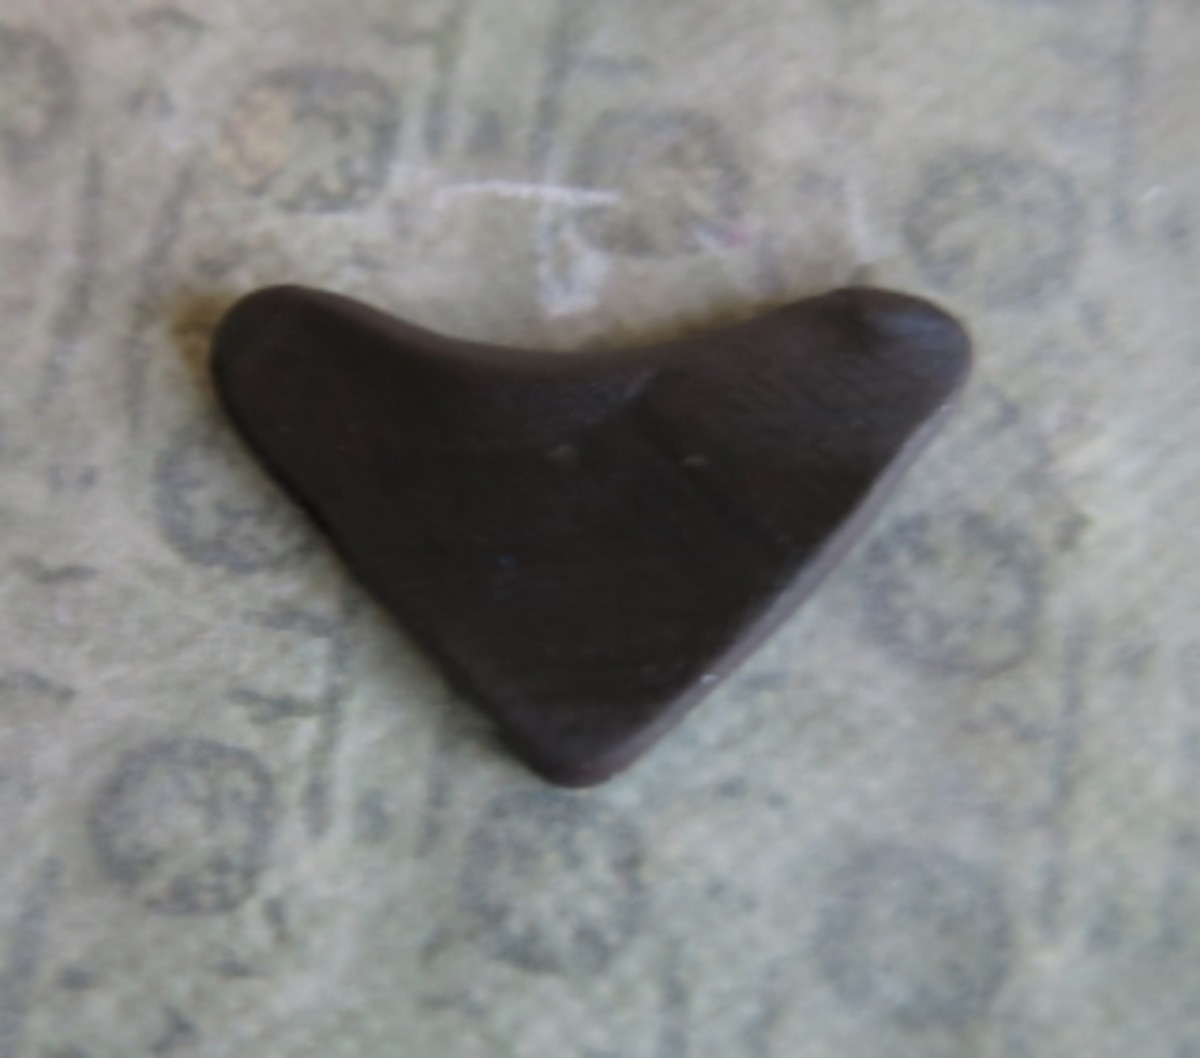 Make the bird's mask by shaping the clay into a rounded triangle, like this.